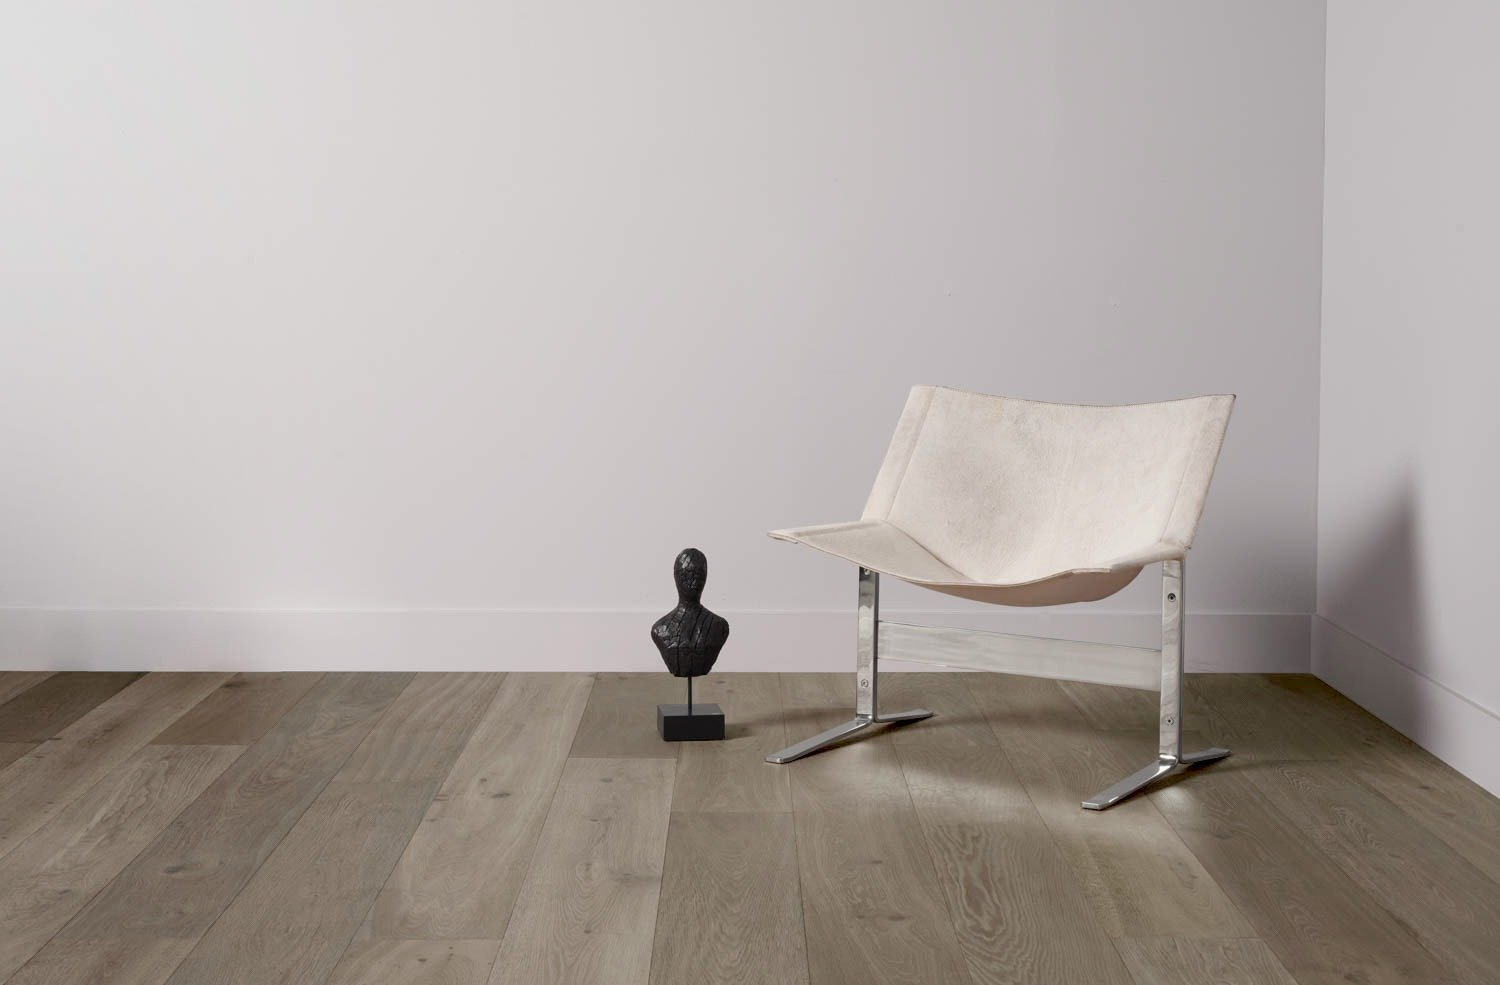 Pistoria flooring and prop and chair in right corner